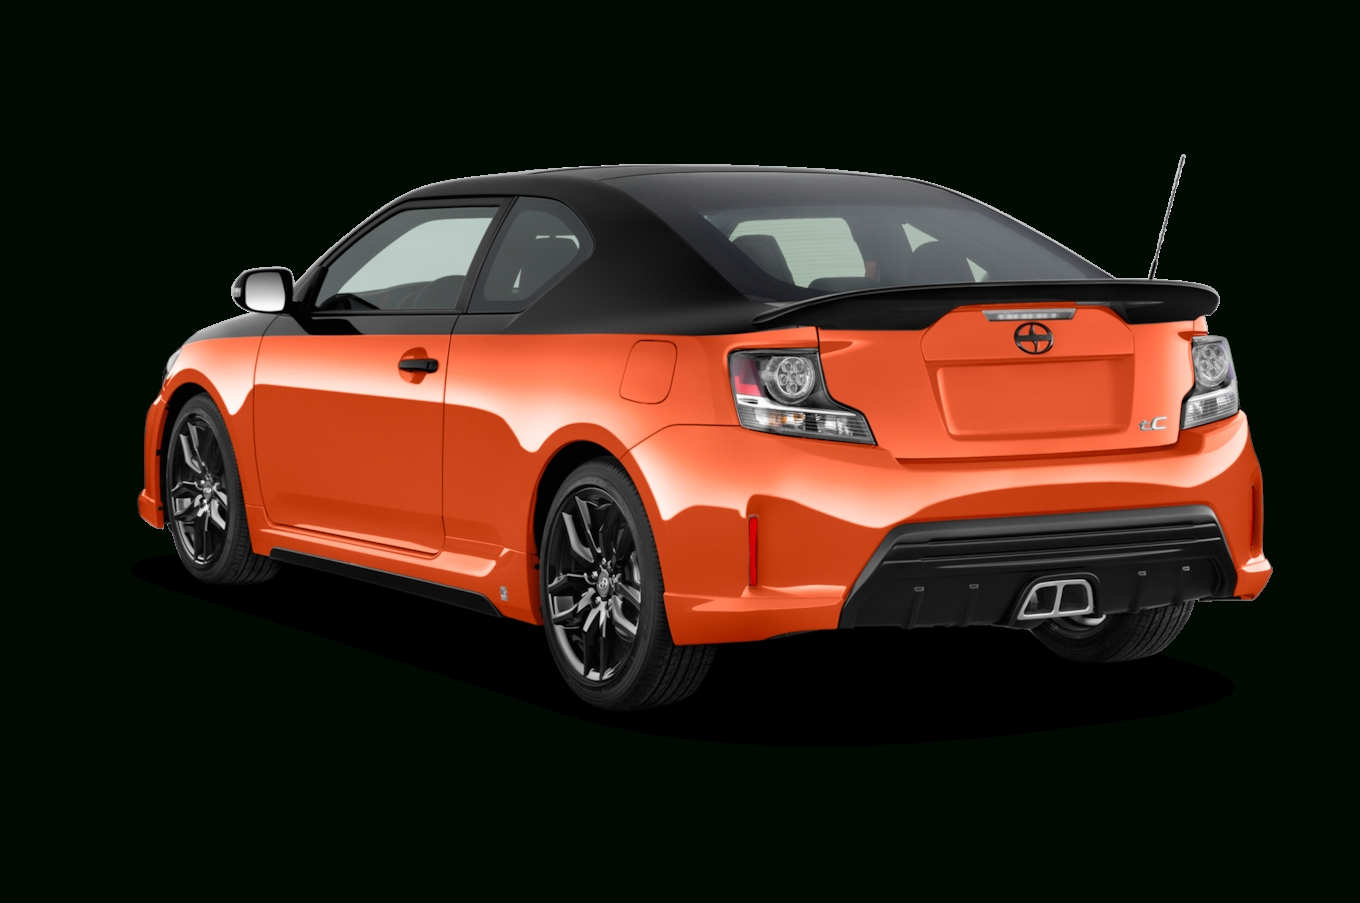 74 The Best 2020 Scion TC Rumors